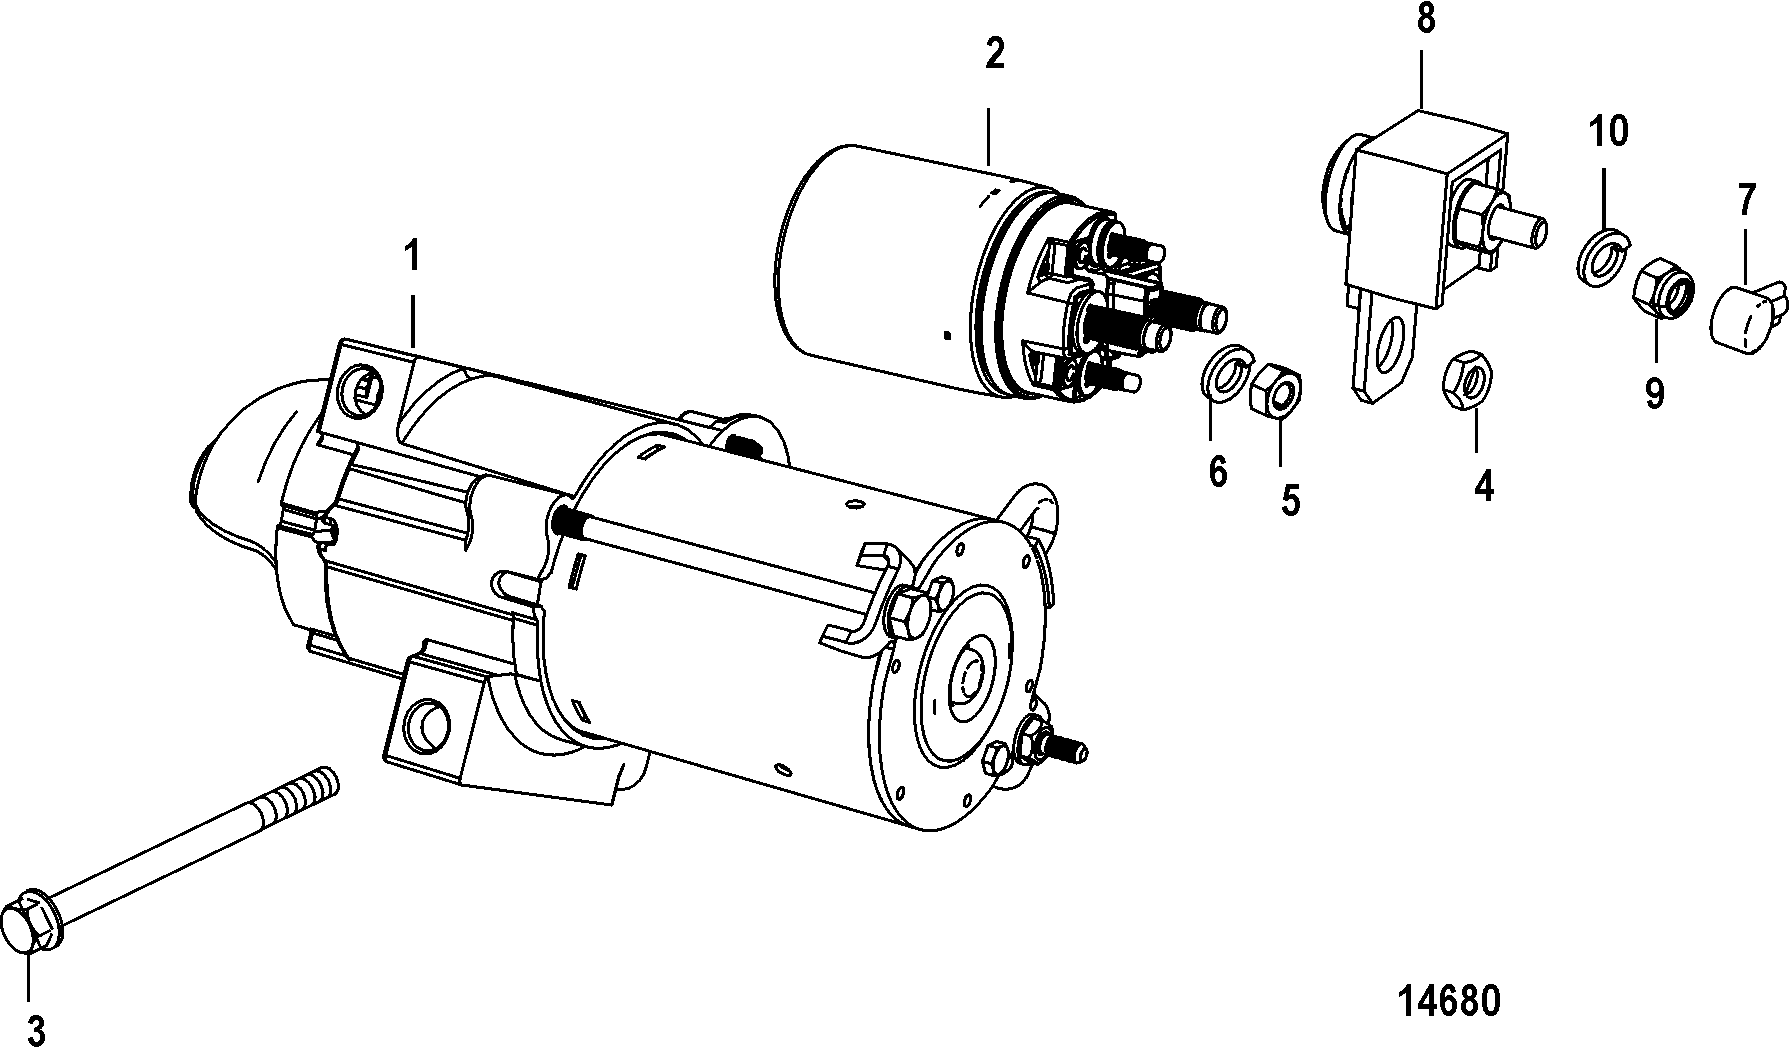 starter motor for mercruiser 5.0l/5.7l alpha/bravo gen+ 05 bmw 7 series starter wiring diagram #15